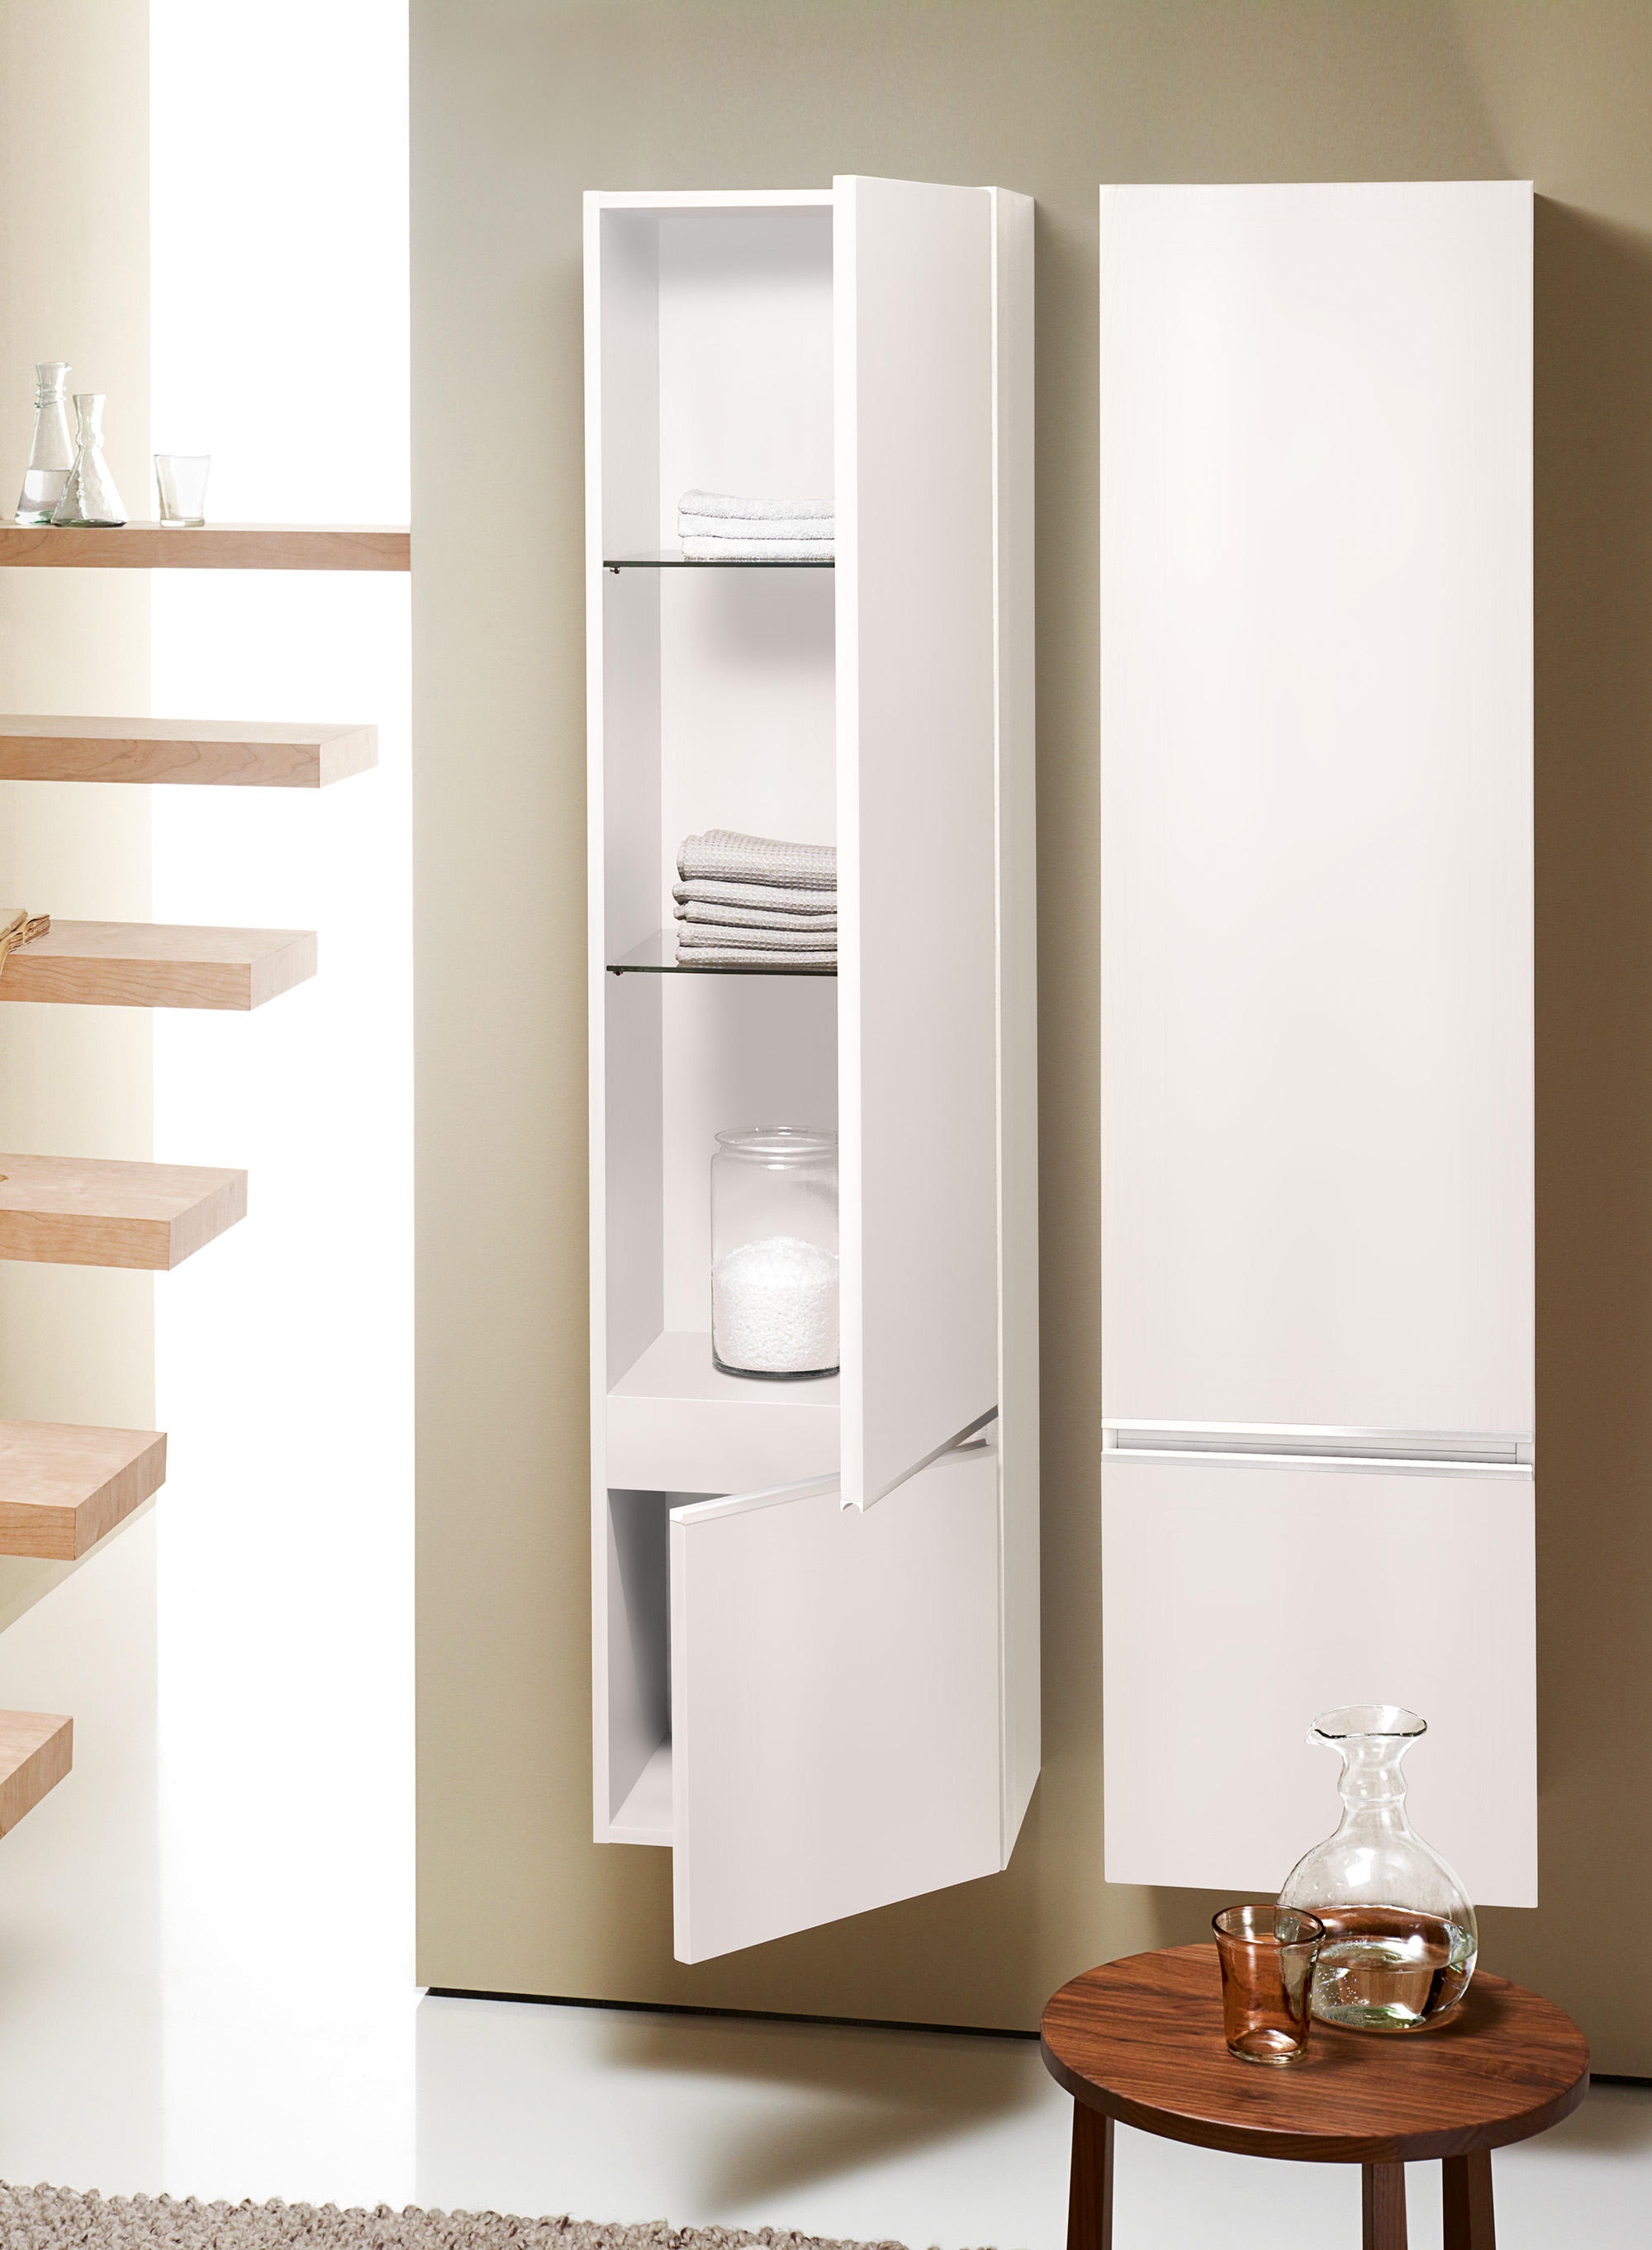 TALL UNIT - Wall Cabinets From Burgbad